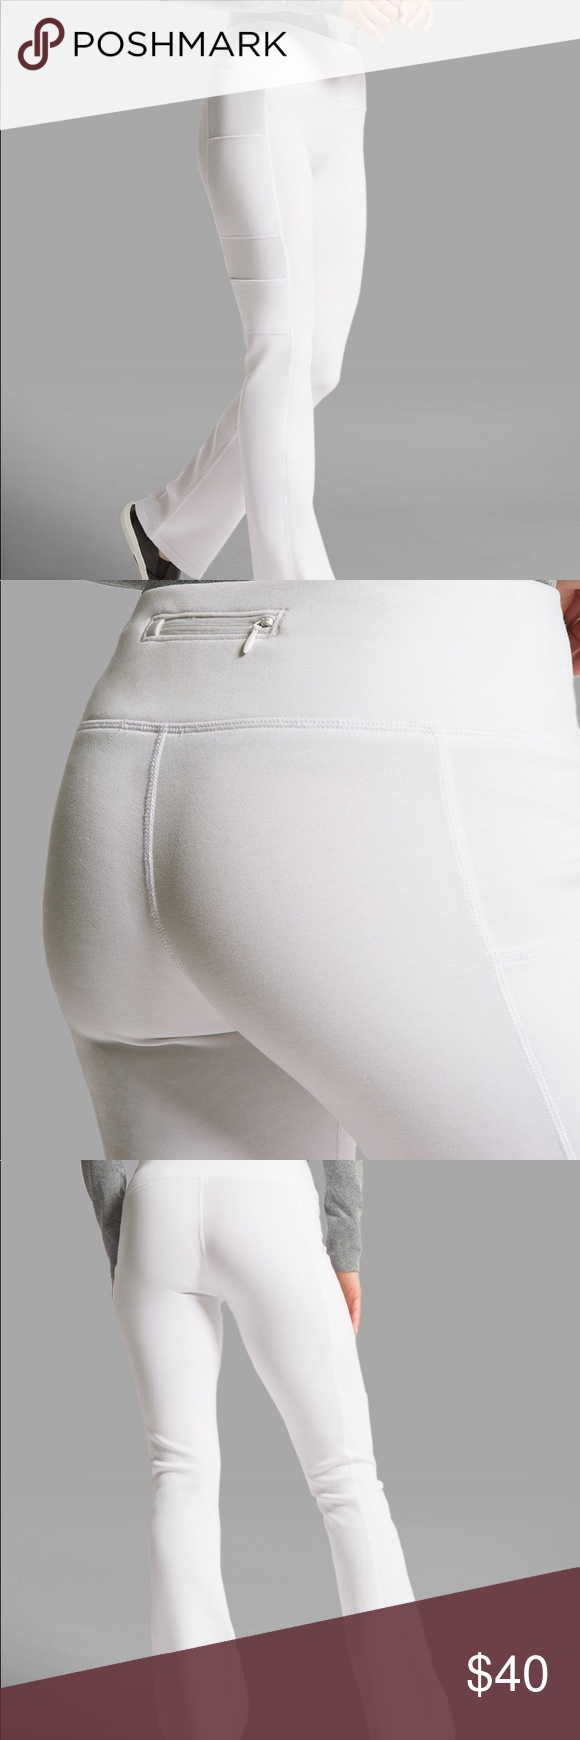 8a2c3c91bba NWT Jaanuu White Yoga Scrub Pants Brand new Jaanuu white yoga scrub pants!  I have too many white pants and cannot return these so I am willing to let  this ...